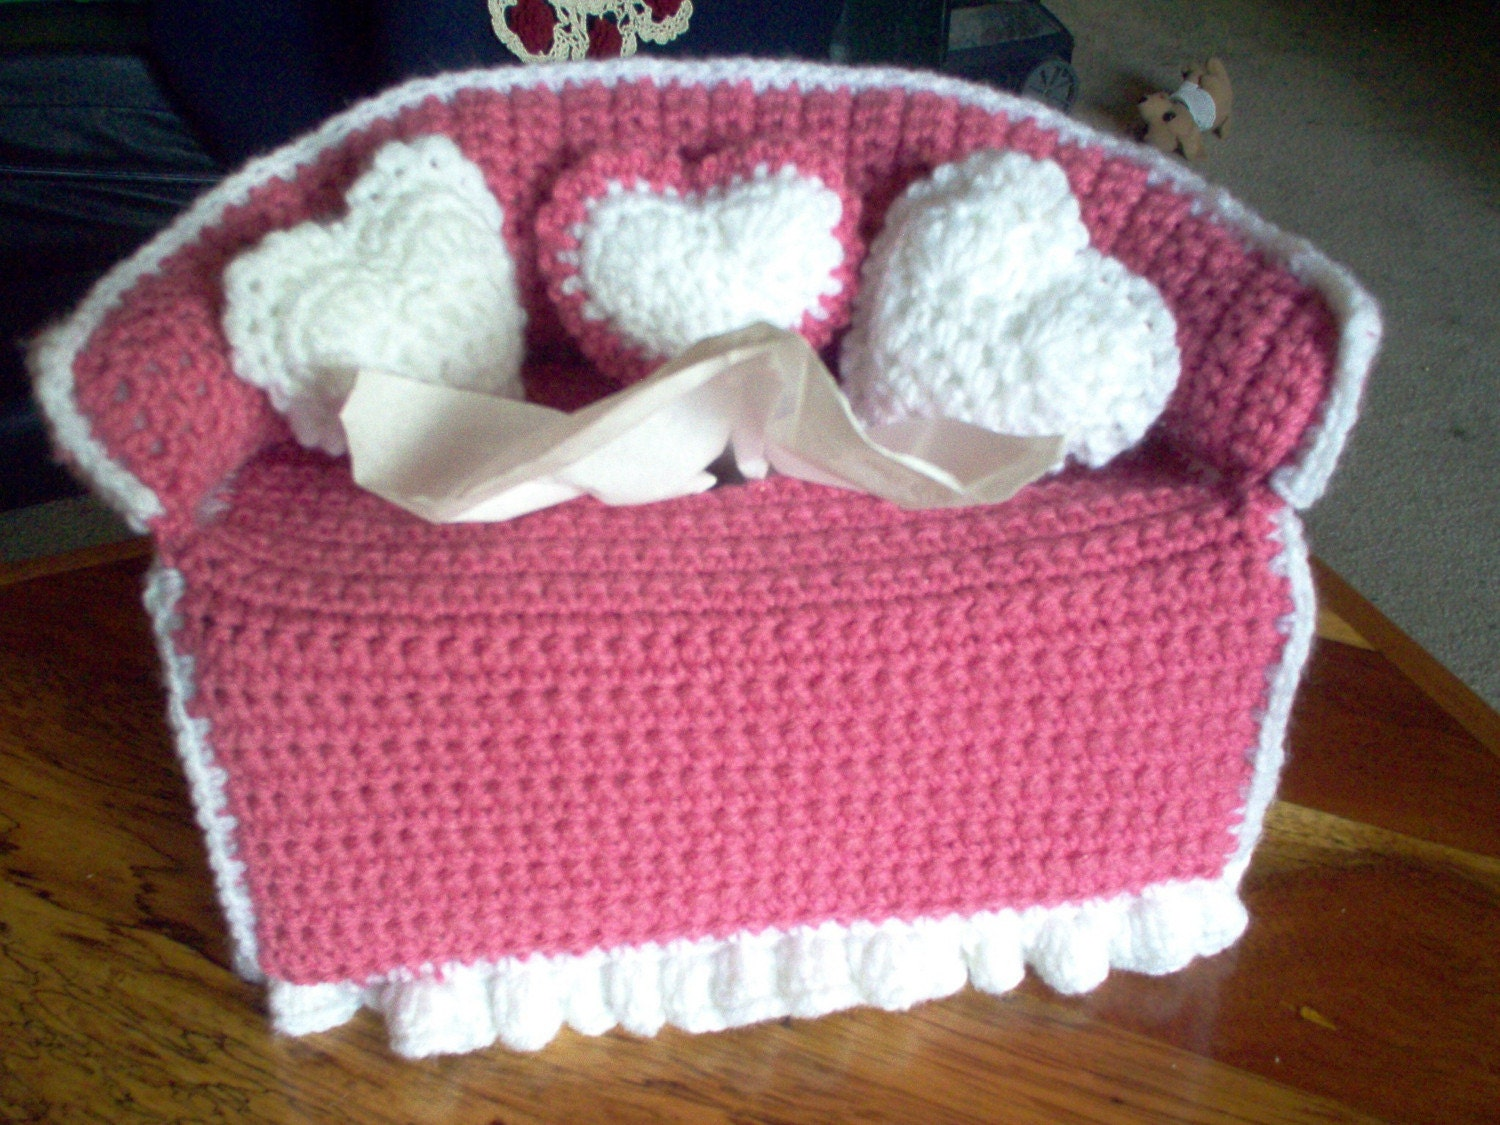 Free Crochet Pattern For Sofa Tissue Box Cover : Puffs Tissue Box Covers and Crocheted Sofa Tissue Box Cover